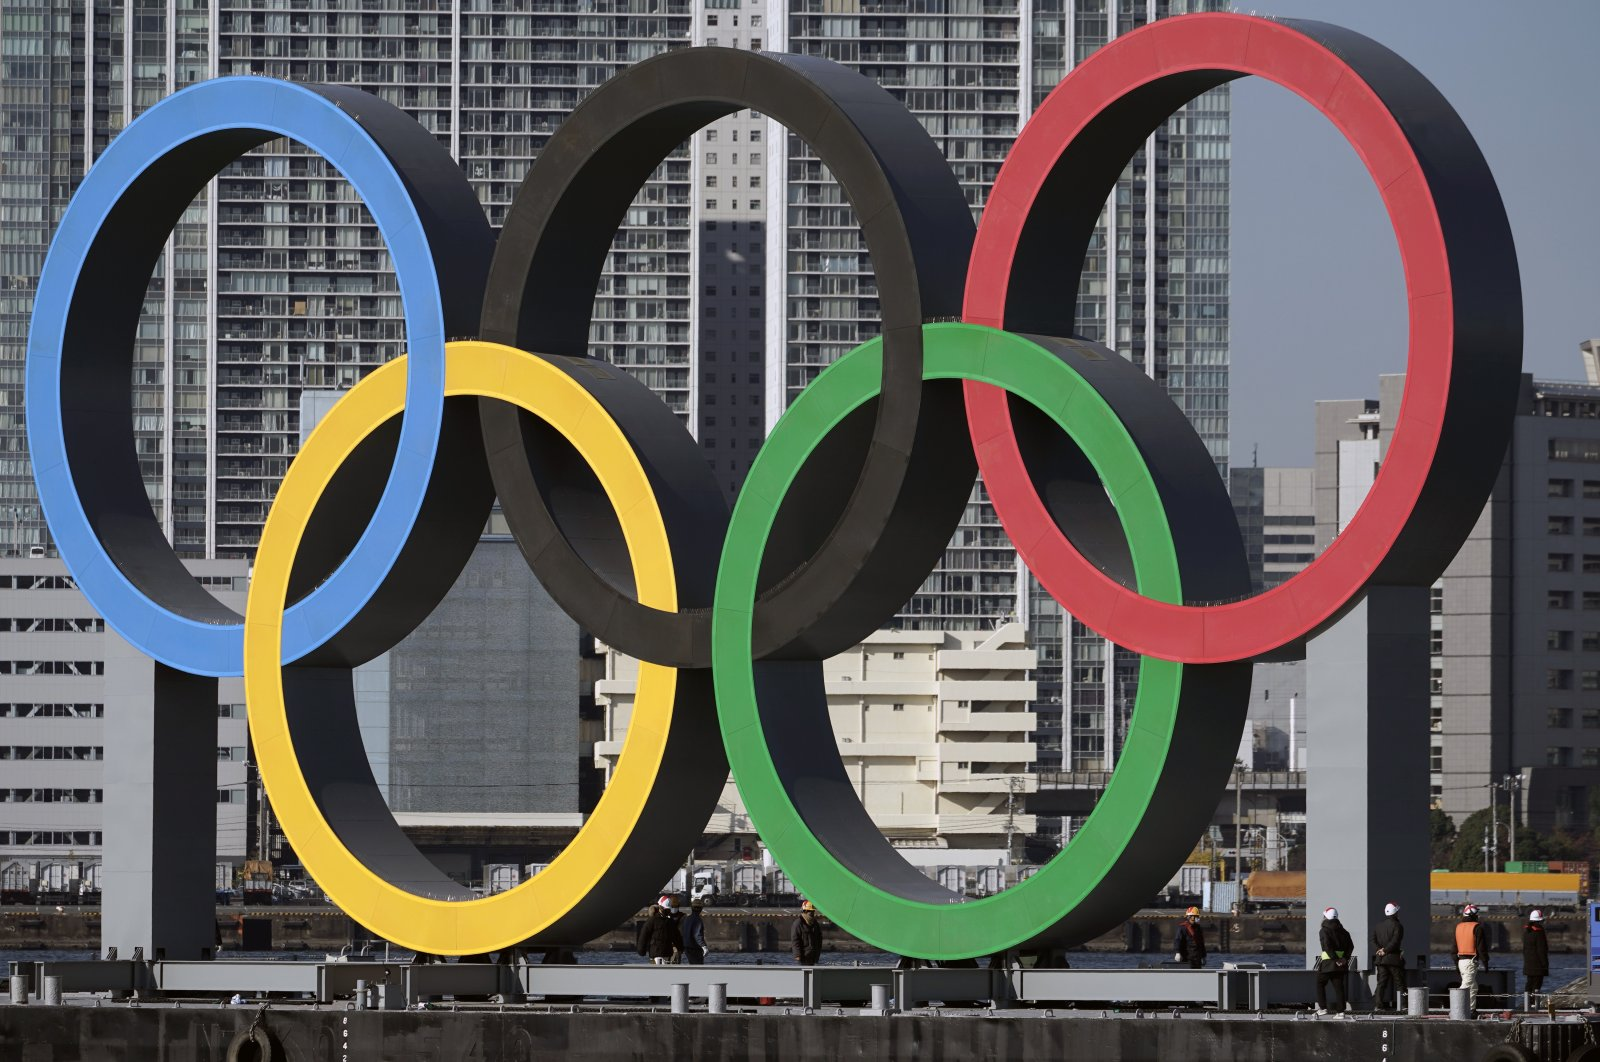 A view of the Olympic symbol in Tokyo, Japan, Dec. 1, 2020. (AP PHOTO)